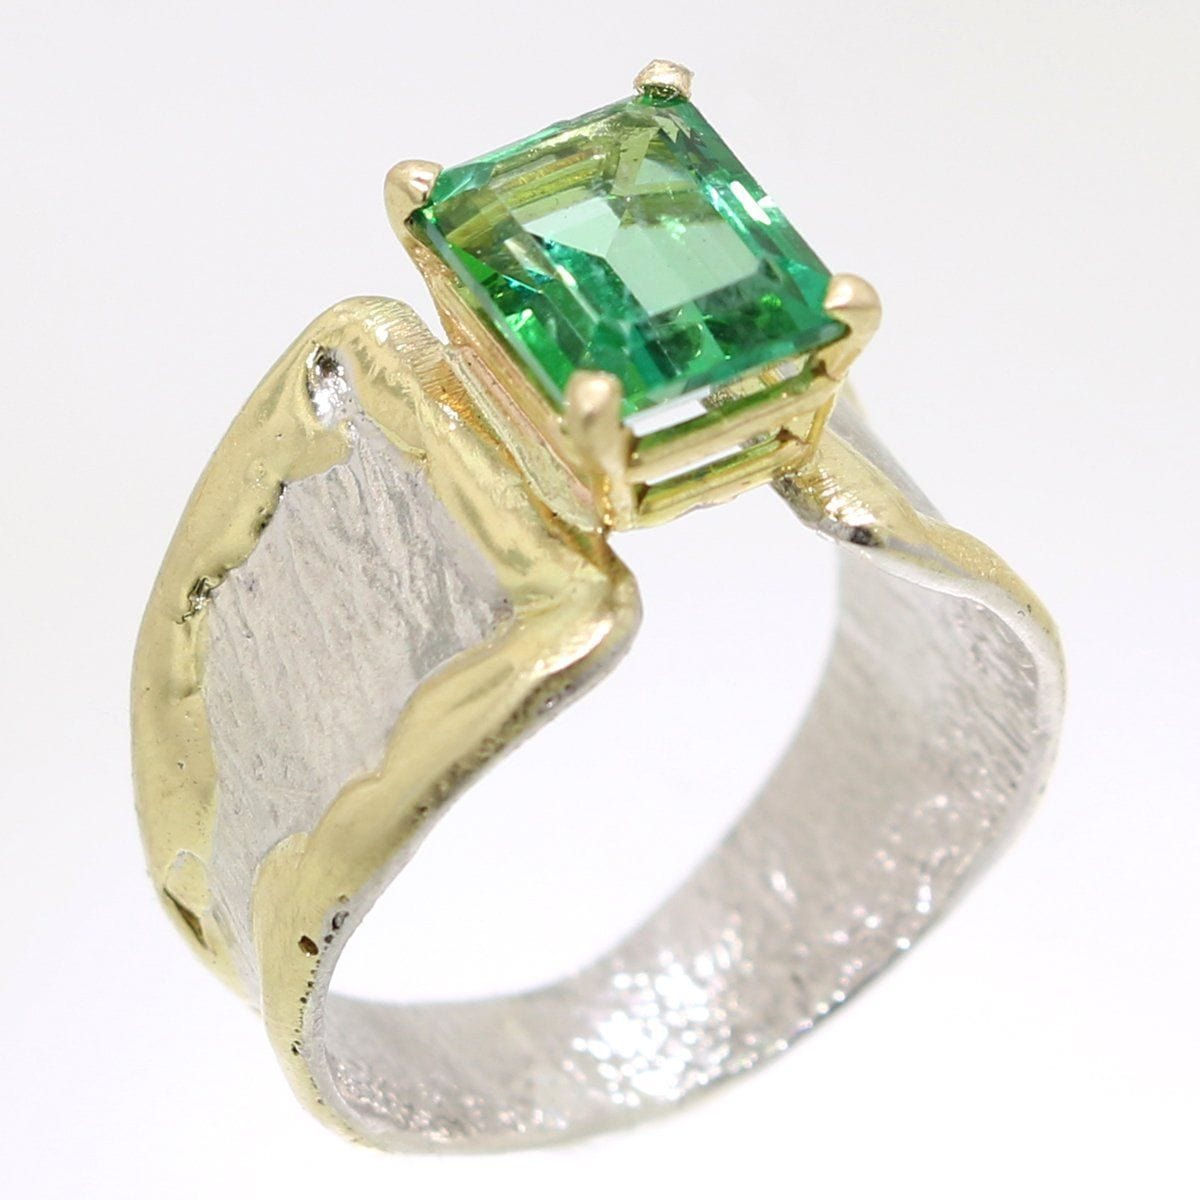 14K Gold & Crystalline Silver Rainforest Green Topaz Ring - 31970-Fusion Designs-Renee Taylor Gallery